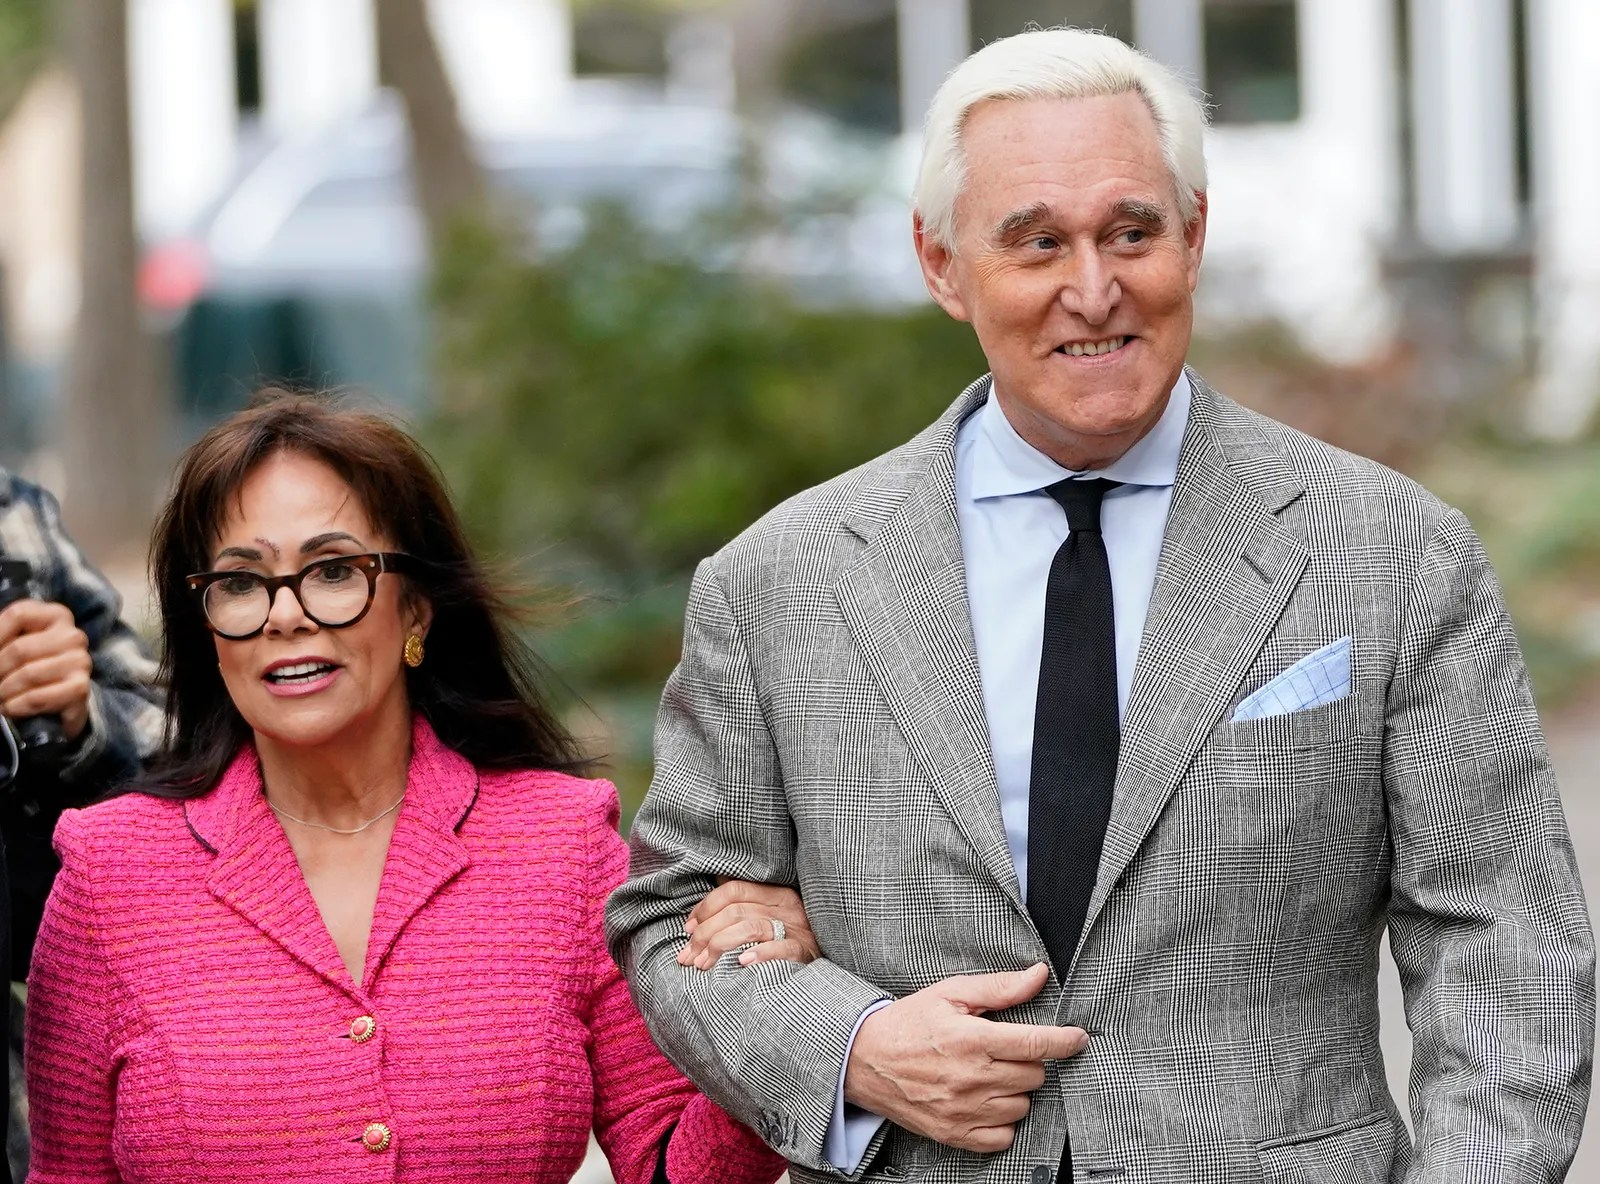 Roger Stone from the waist up walking outside wearing a grey suit and black tie next to a woman wearing a bright pink...